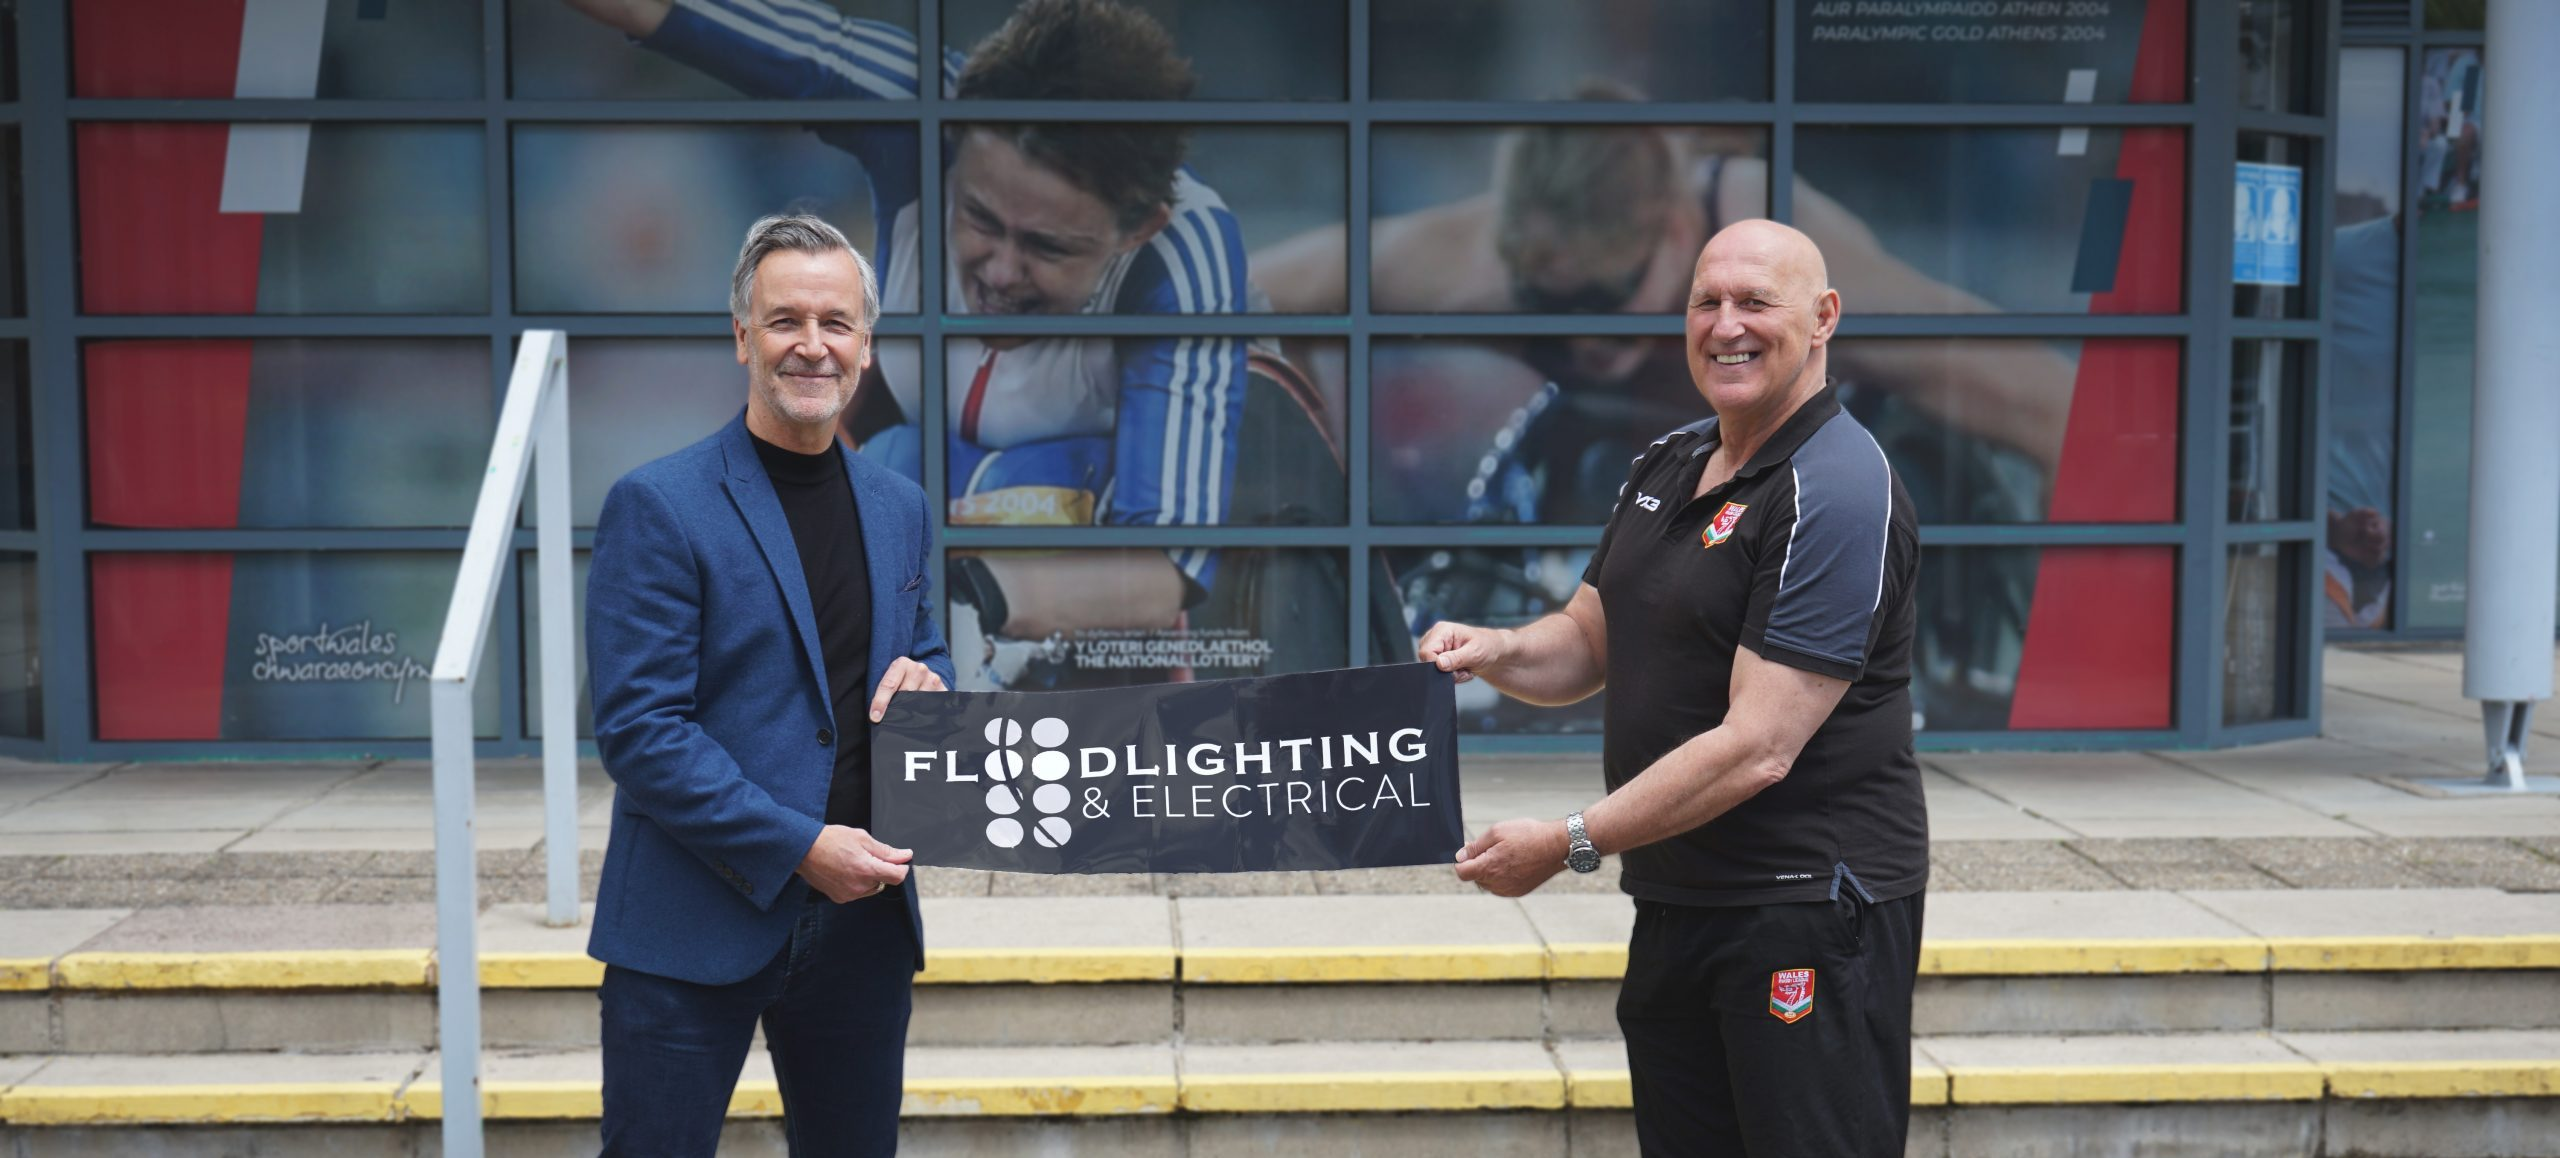 Floodlighting & Electrical become Wales Rugby League's official partners